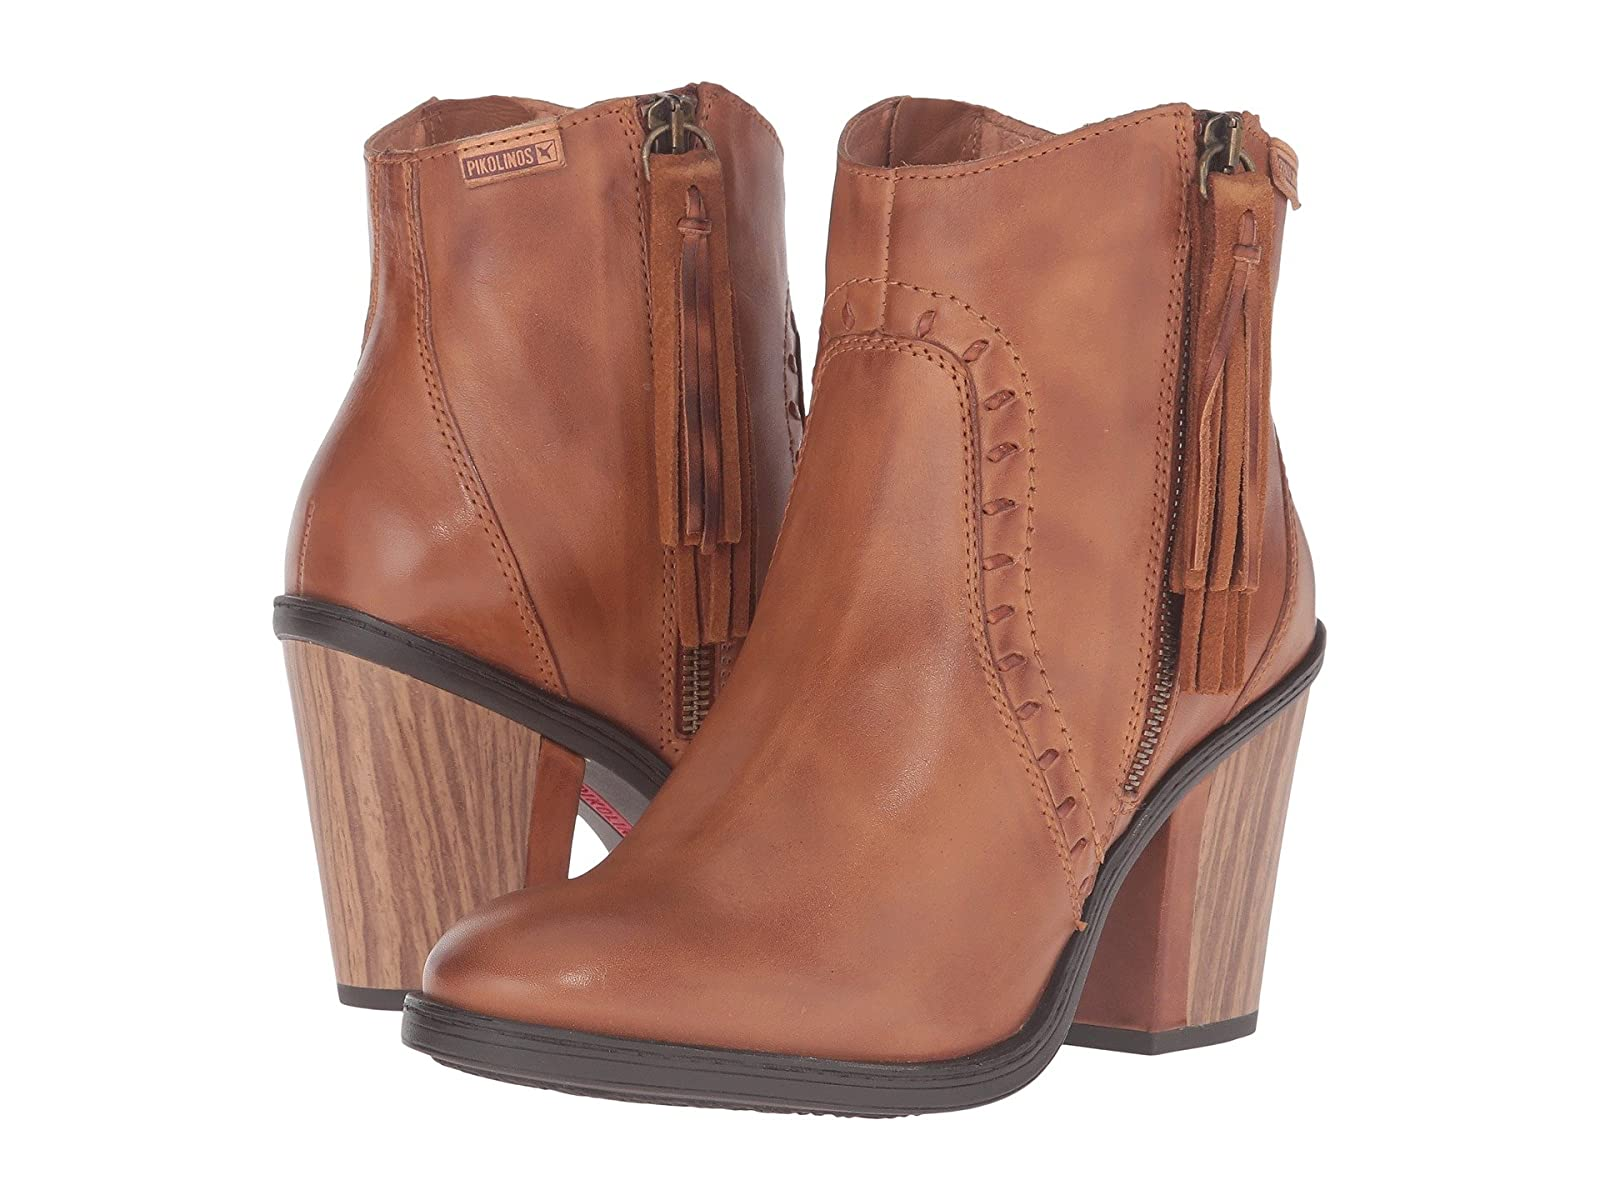 Pikolinos Alicante W3J-8823Cheap and distinctive eye-catching shoes